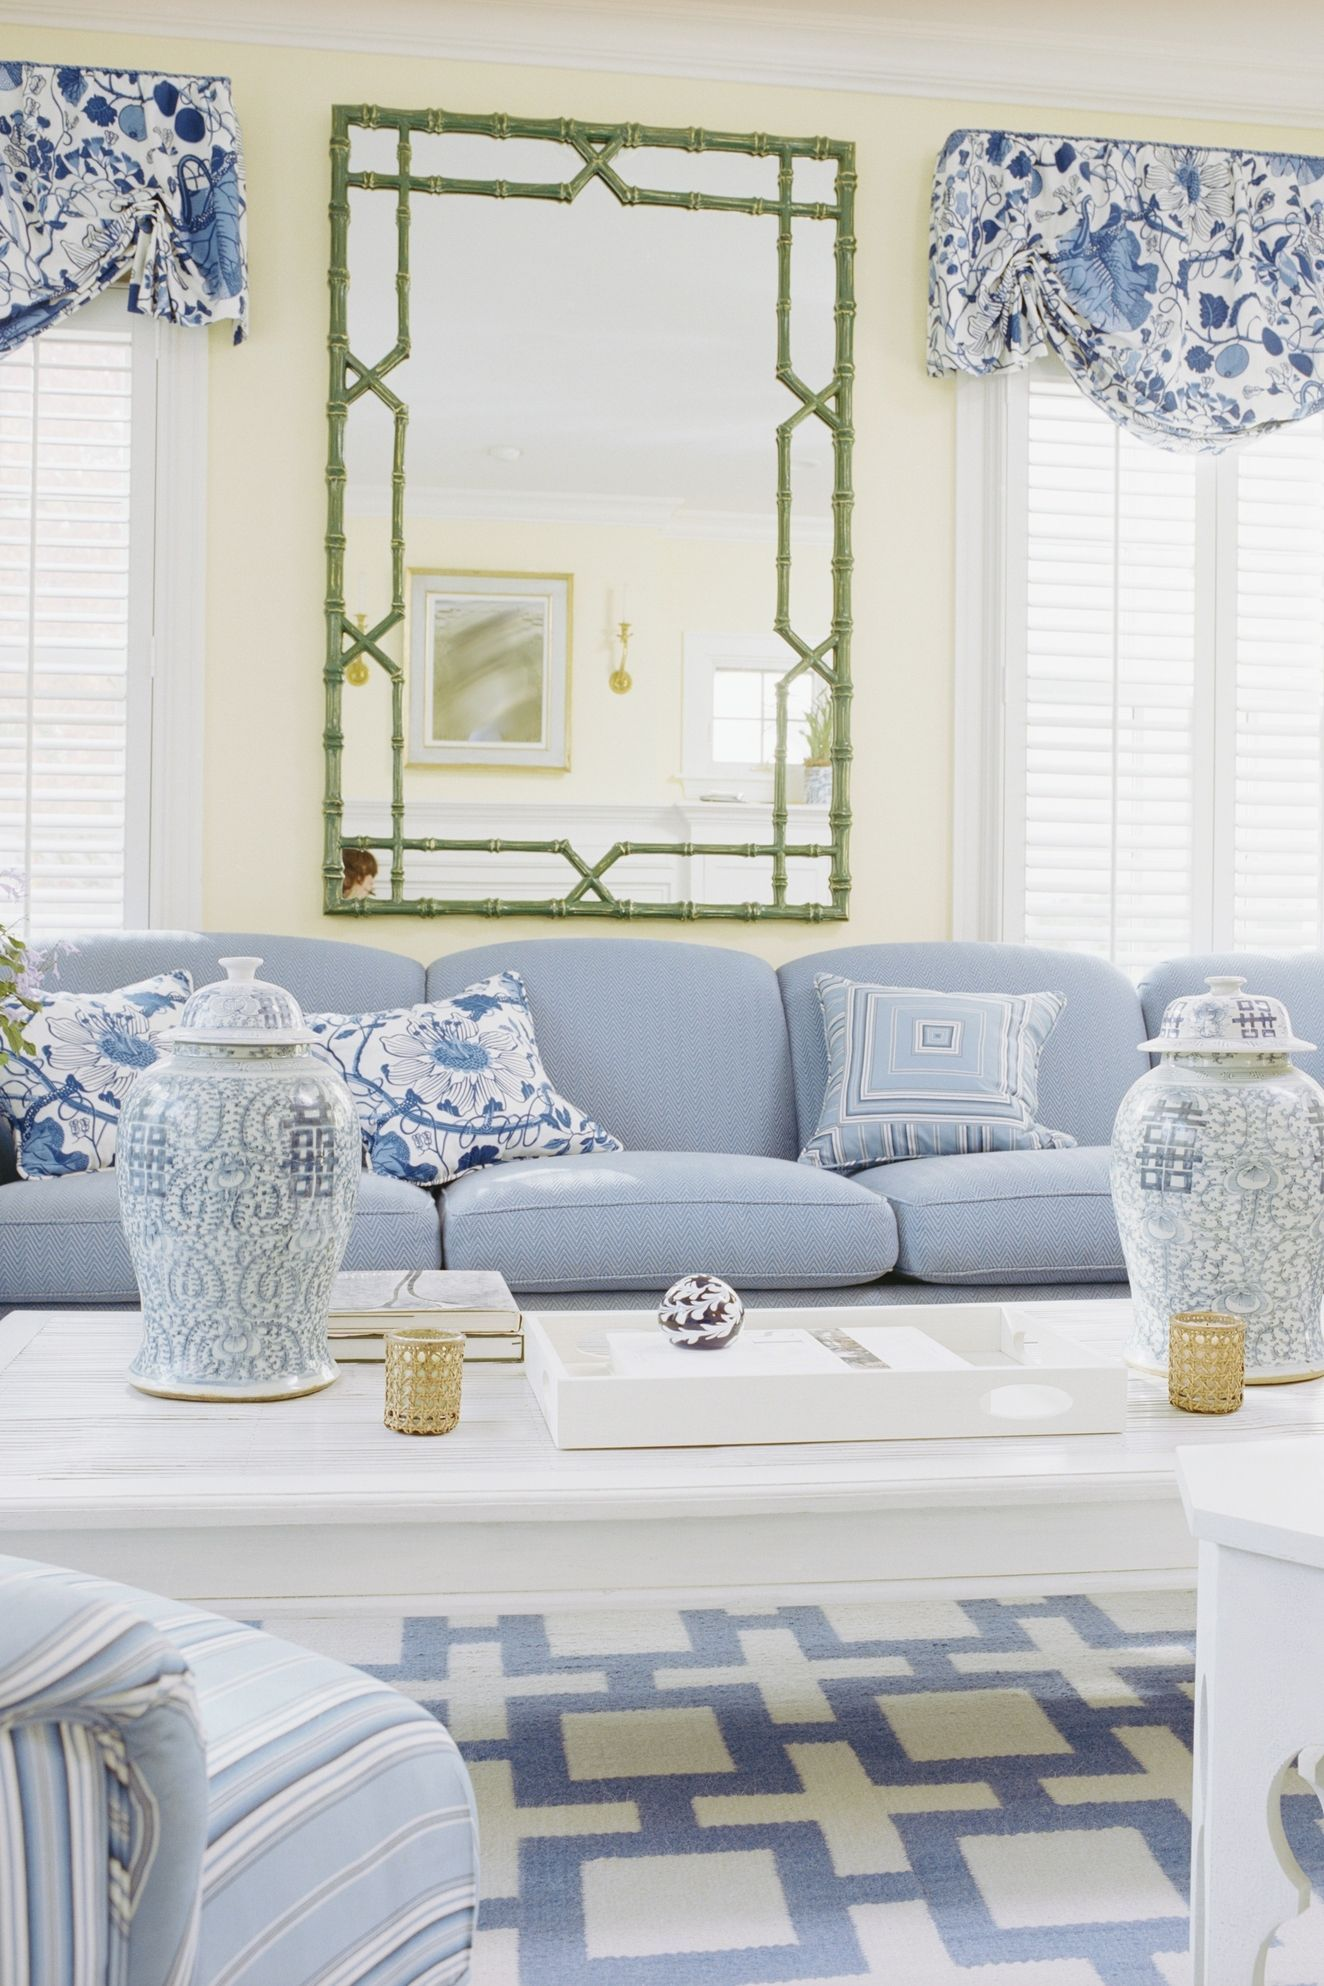 23 Reasons Why Blue And White Is The Most Classic C